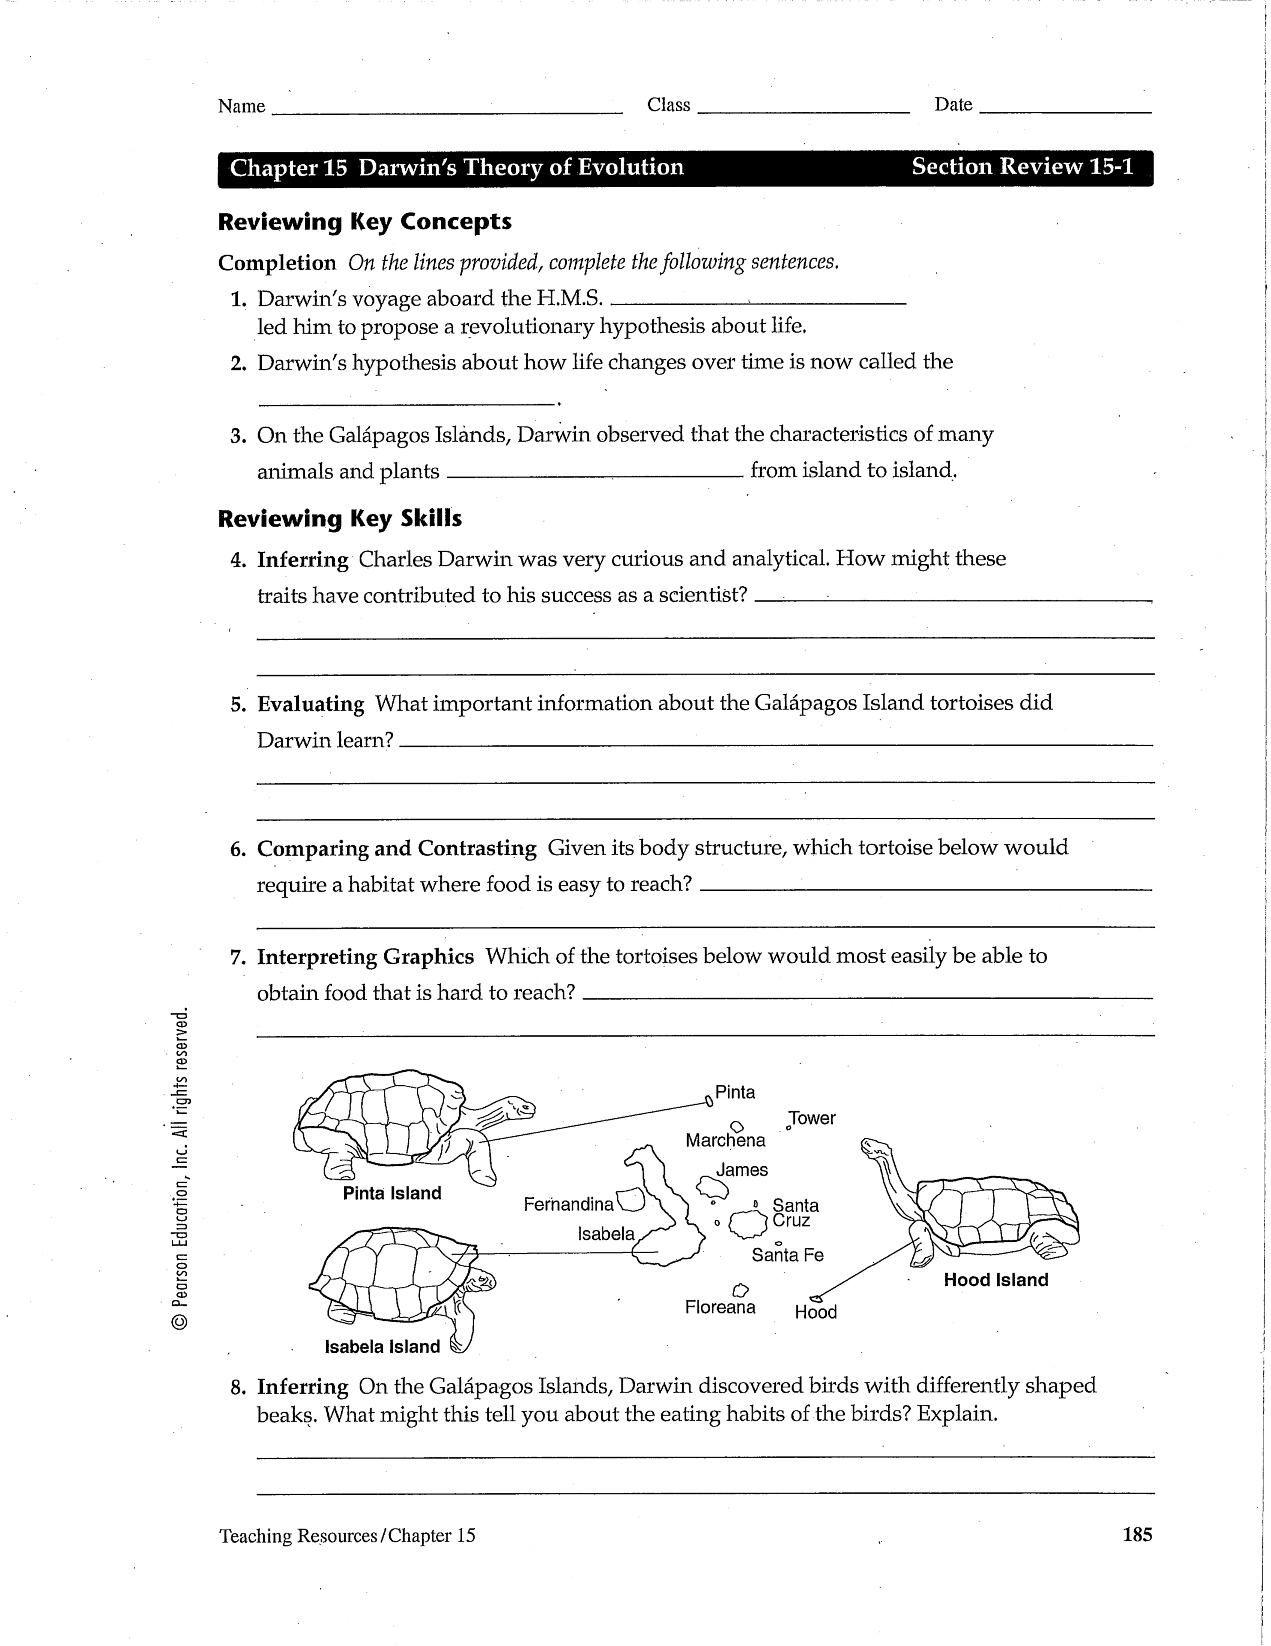 Darwins Theory of Evolution Worksheet – Fossil Record Worksheet